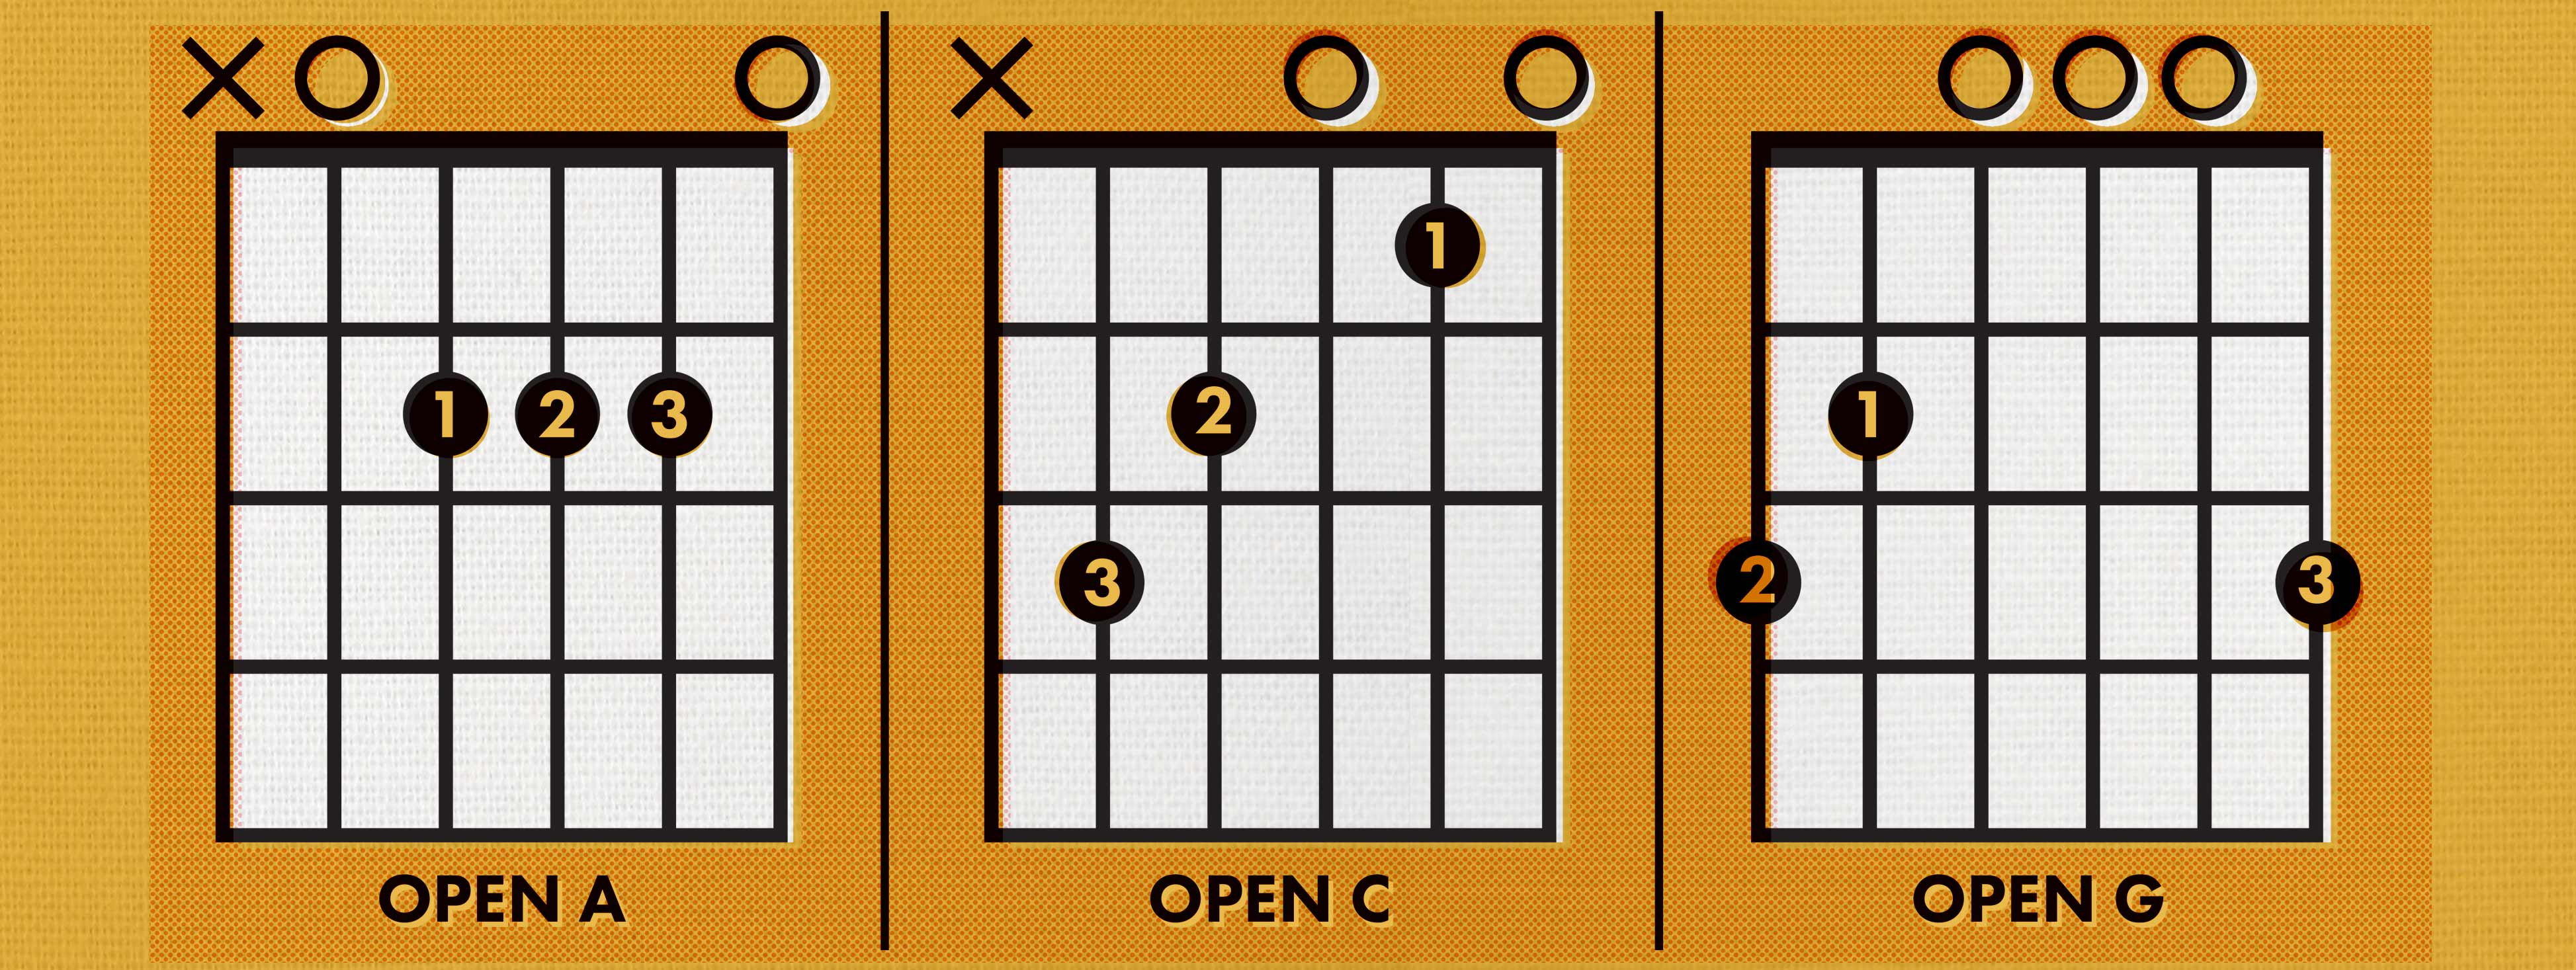 How To Read Guitar Chords Chord Charts Fender Diagrams